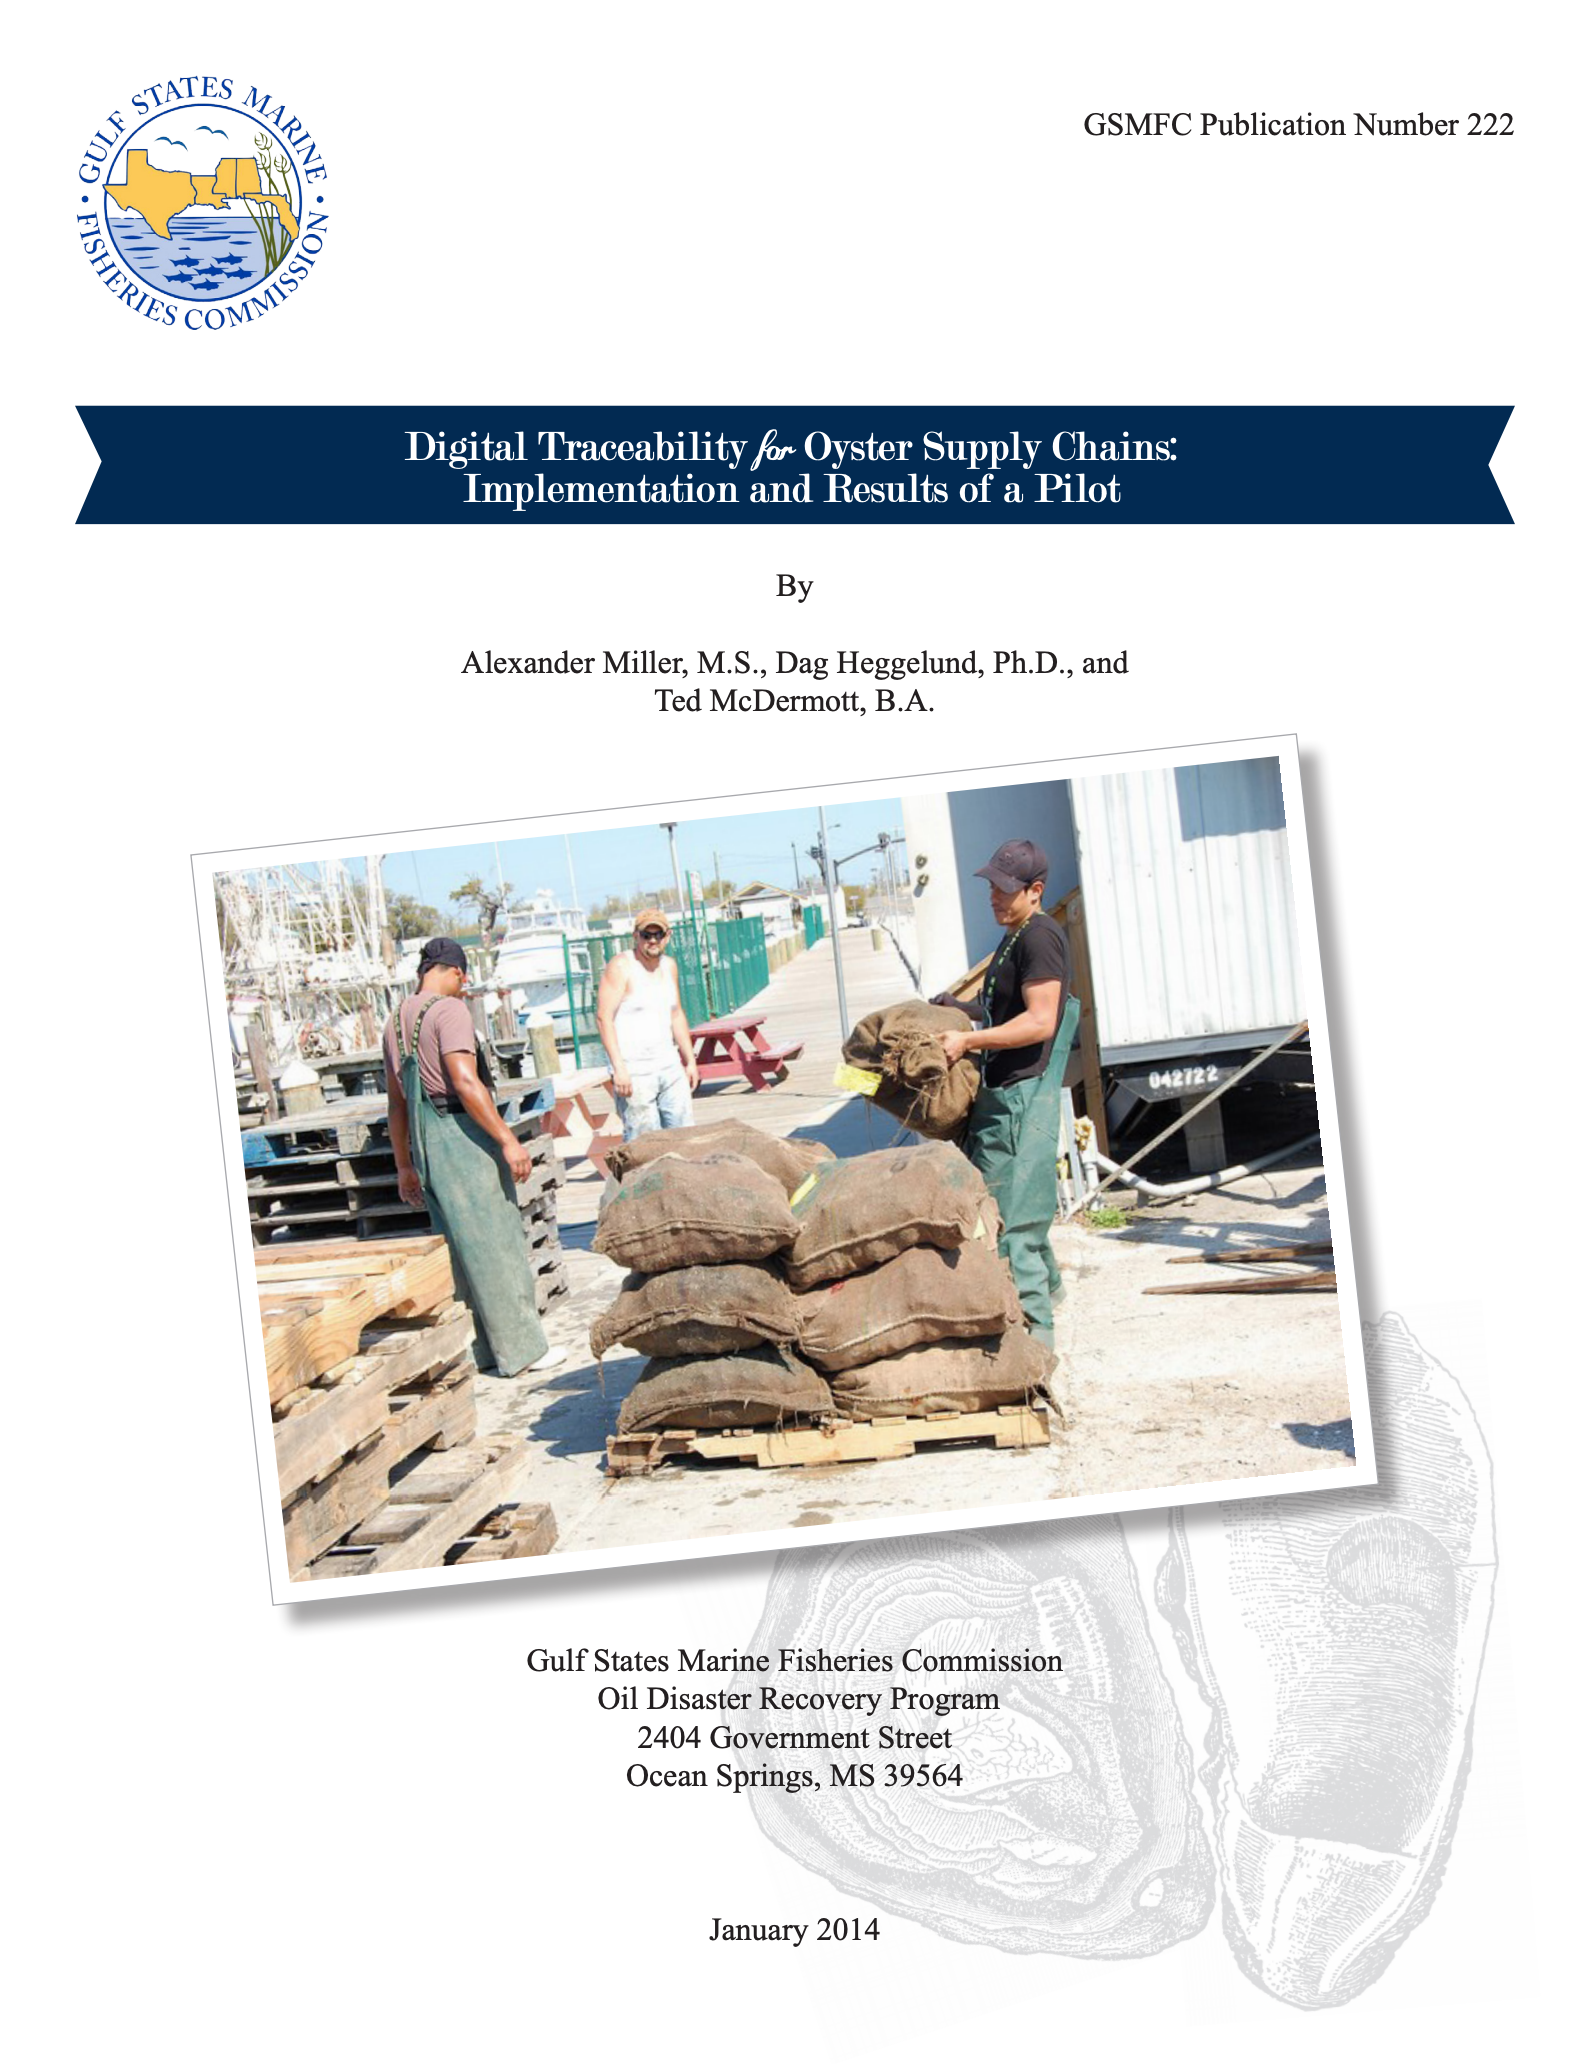 Digital Traceability for Oyster Supply Chains